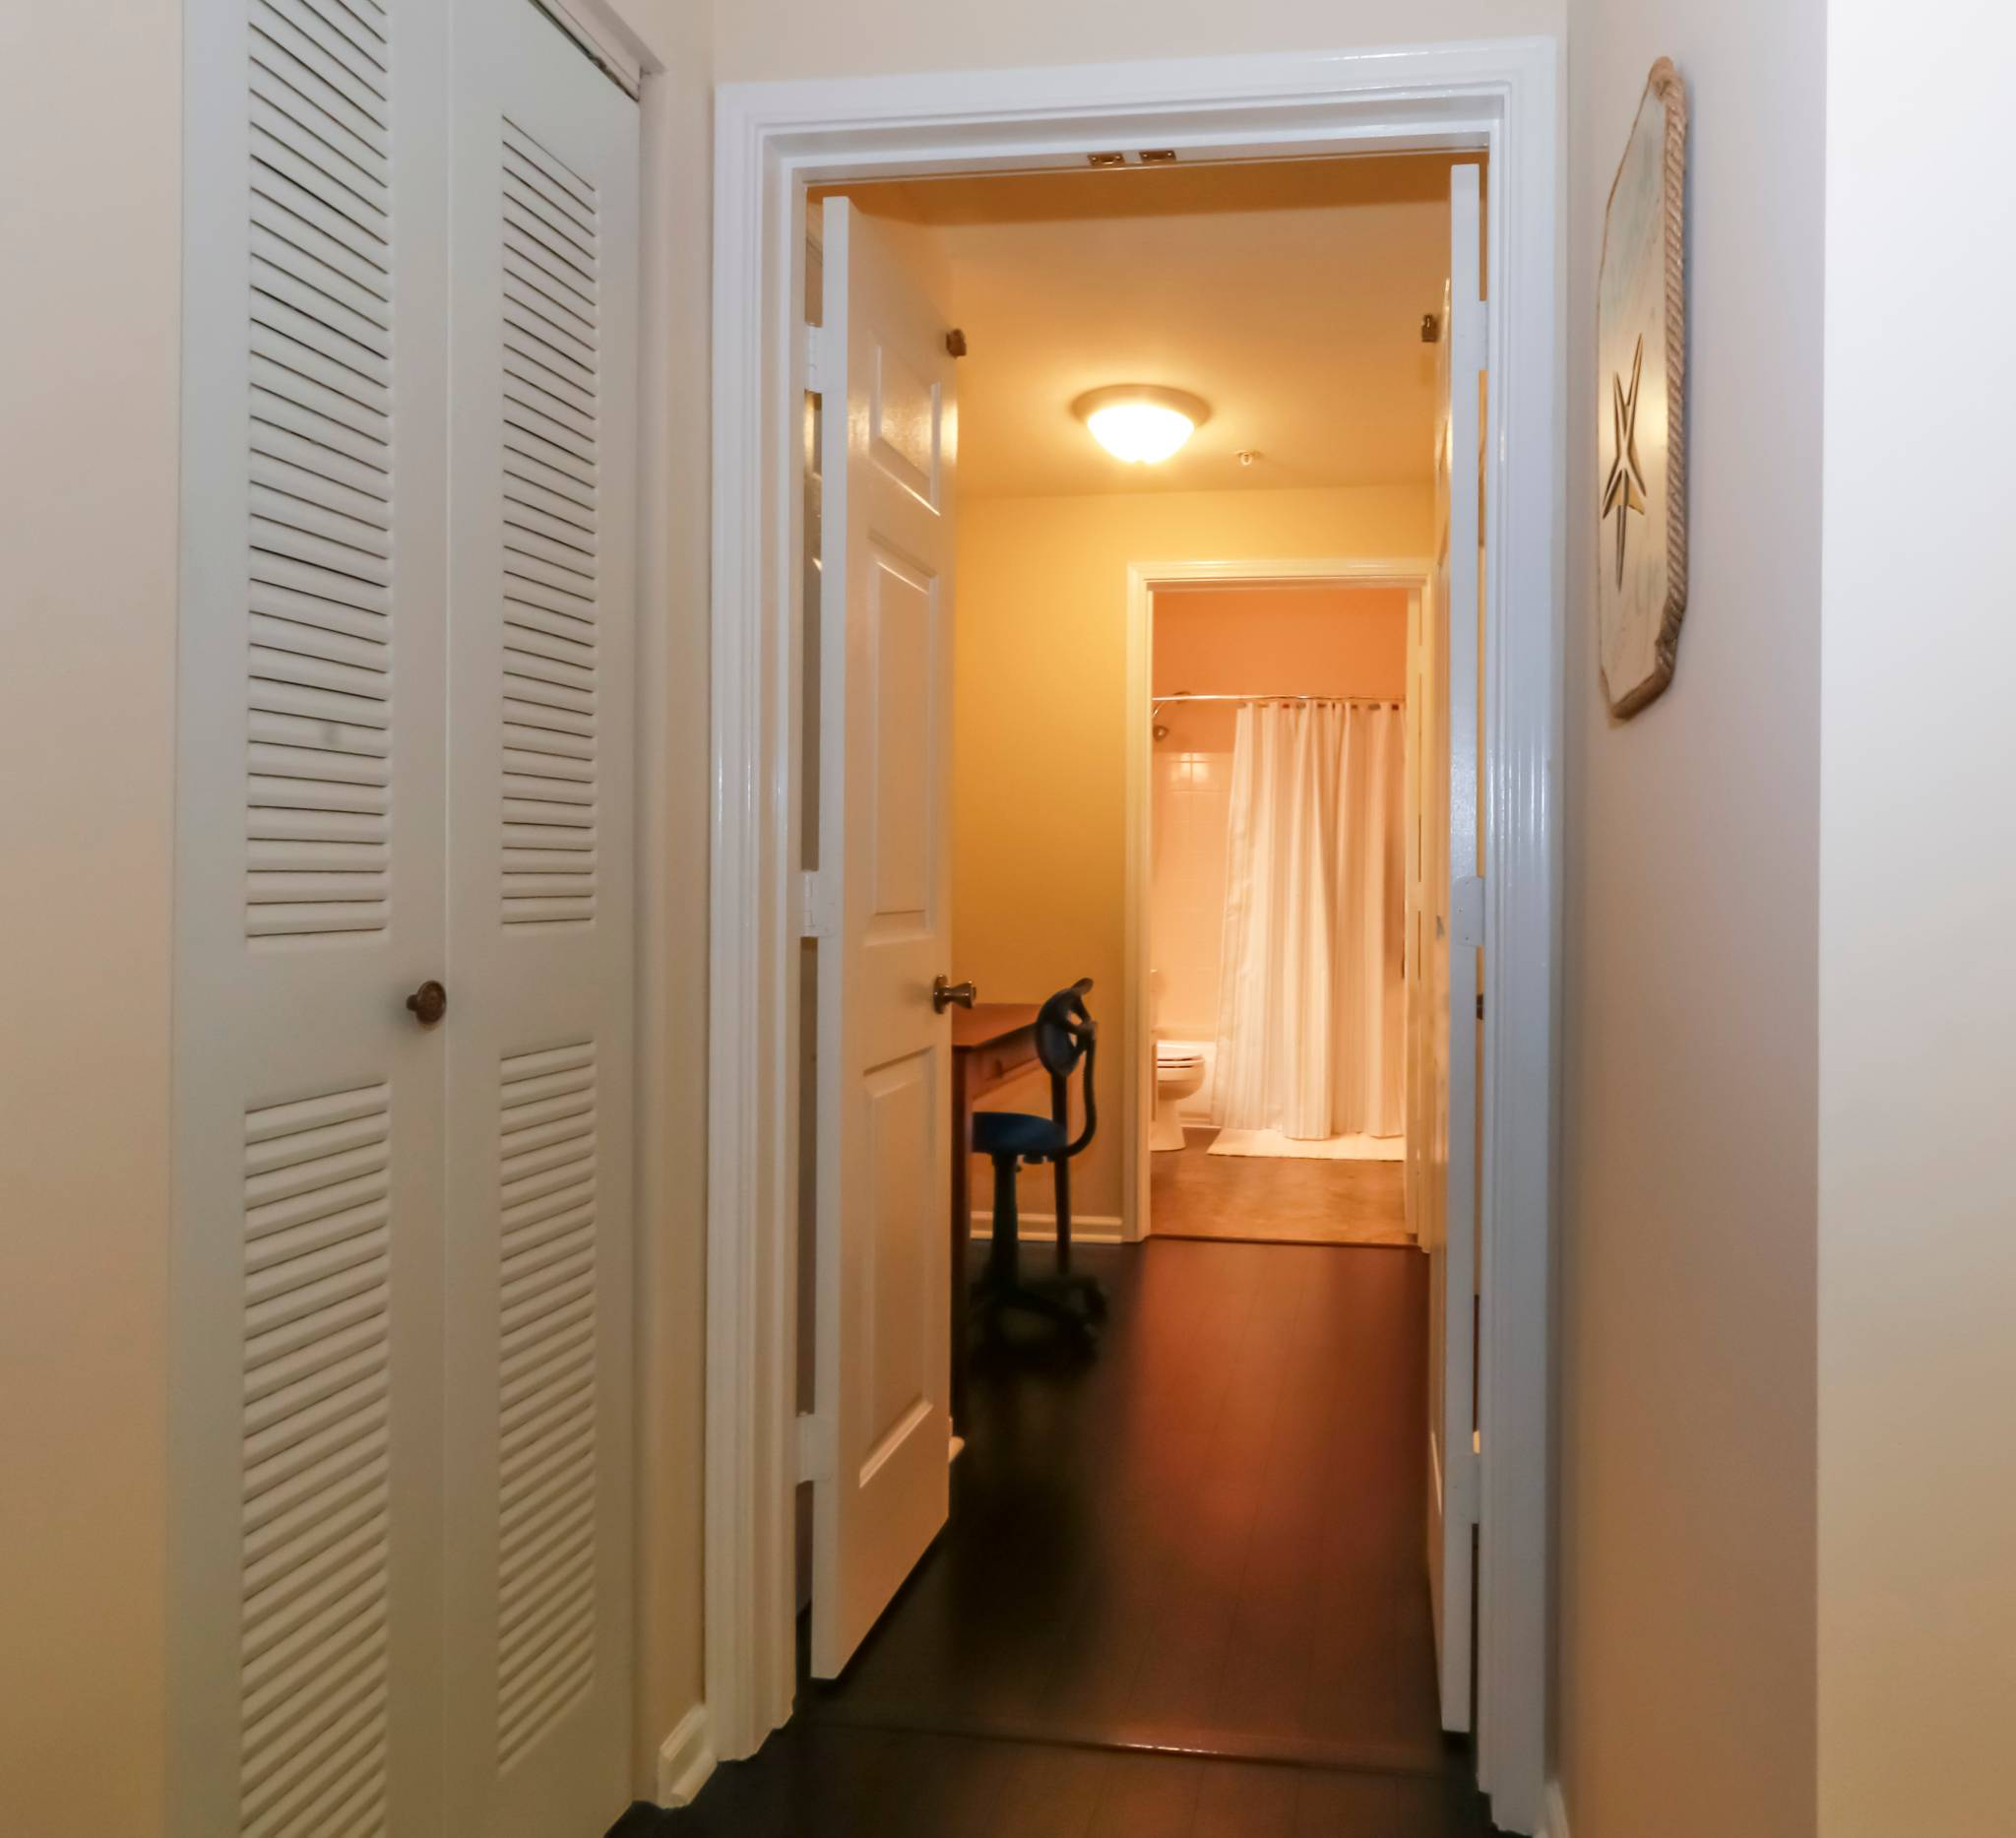 Rental Search: Barnes Plantation 628: Place To Stay On Vacation 2 Bedroom